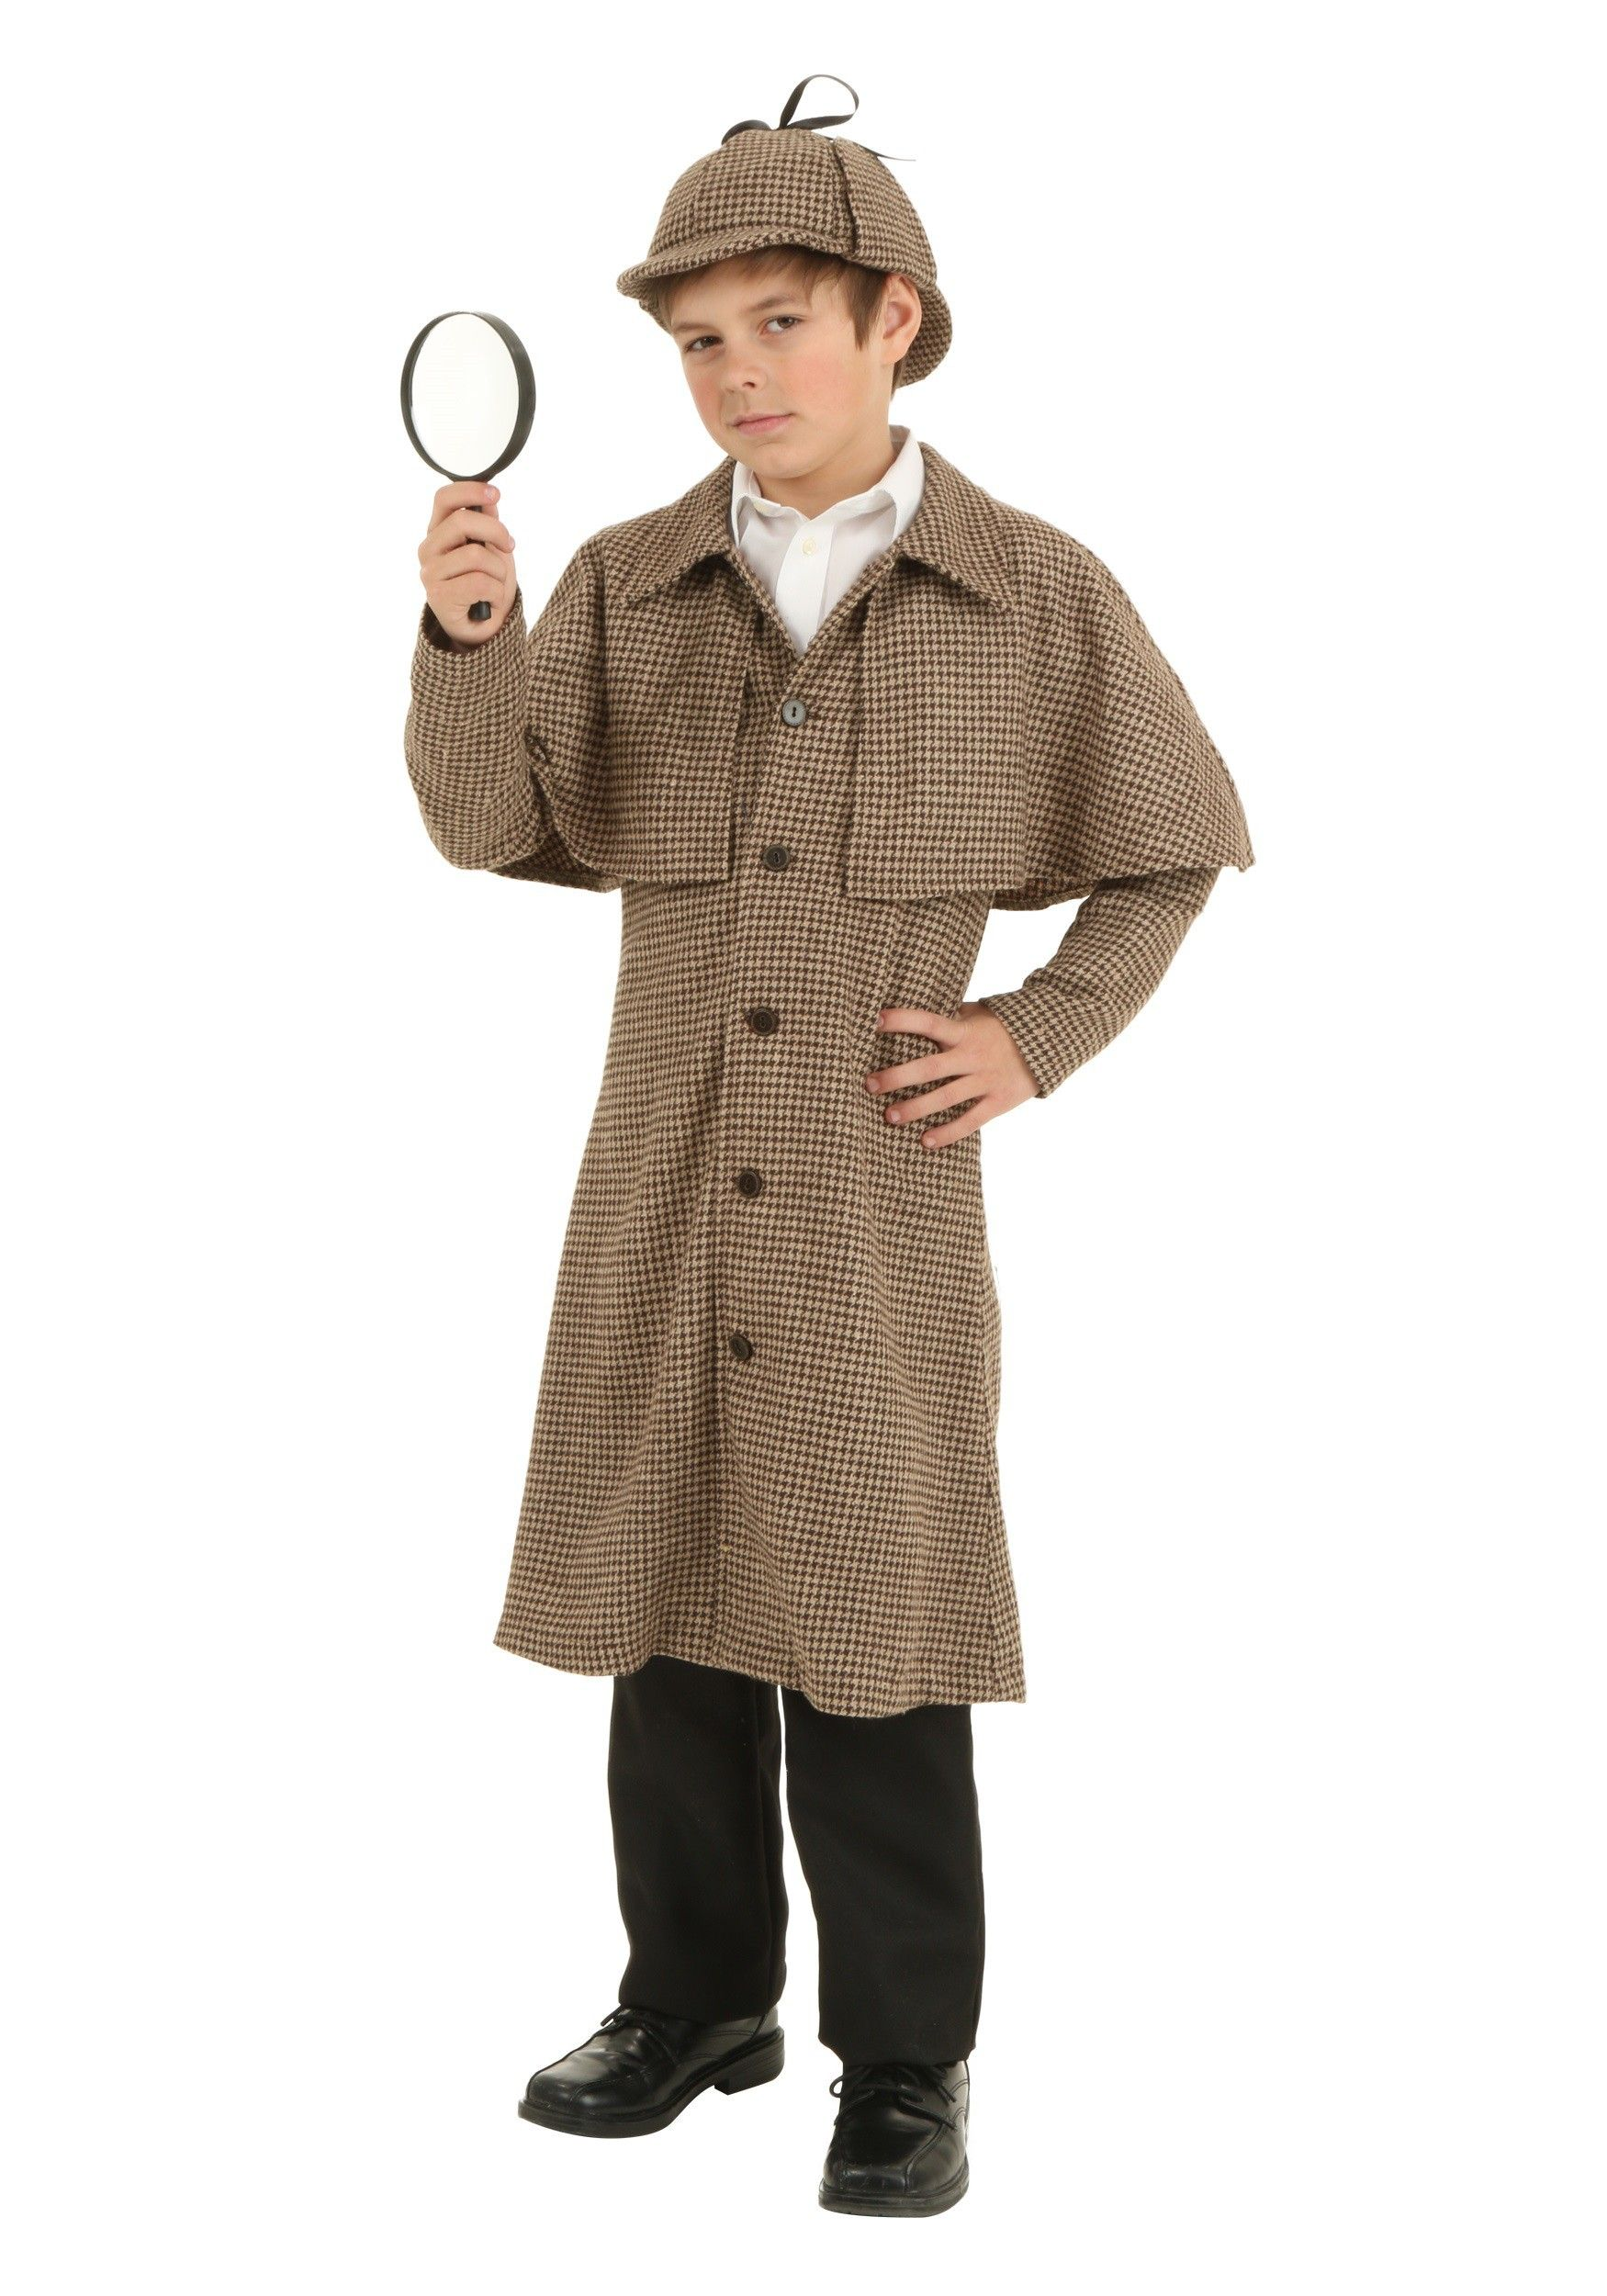 CHILDS DETECTIVE KIT SHERLOCK HOLMES BOOK DAY WEEK FANCY DRESS CHARACTER COSTUME